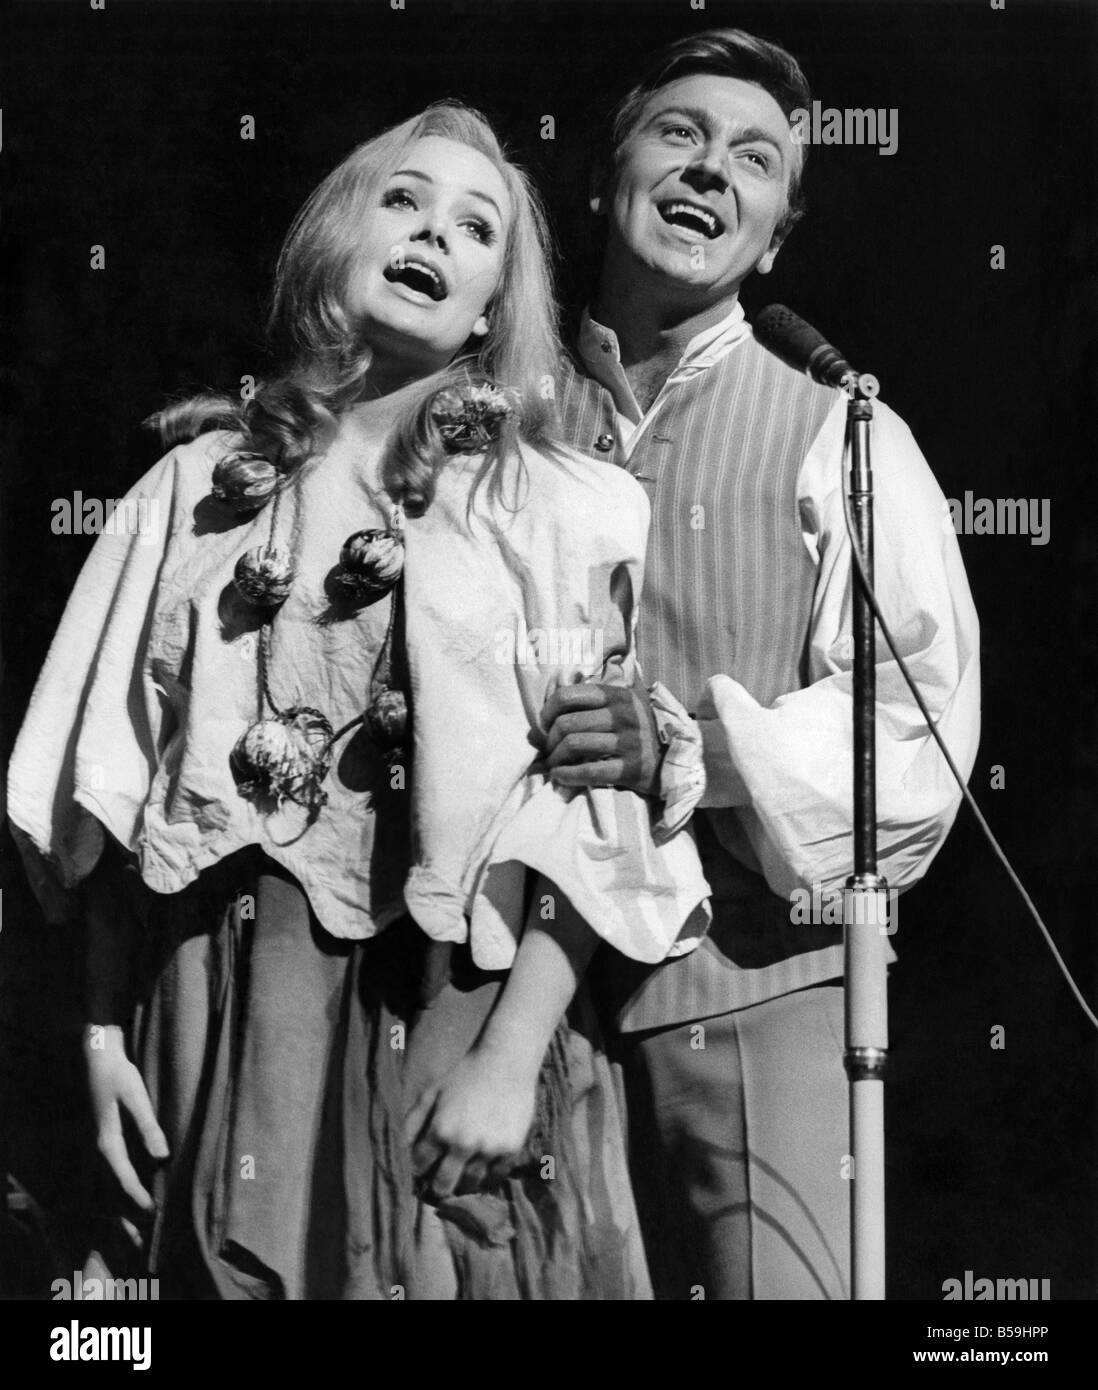 Cinderella Pippa Steel And Buttons Des OConner Pictured Singing During The Pantomime December 1967 P008100